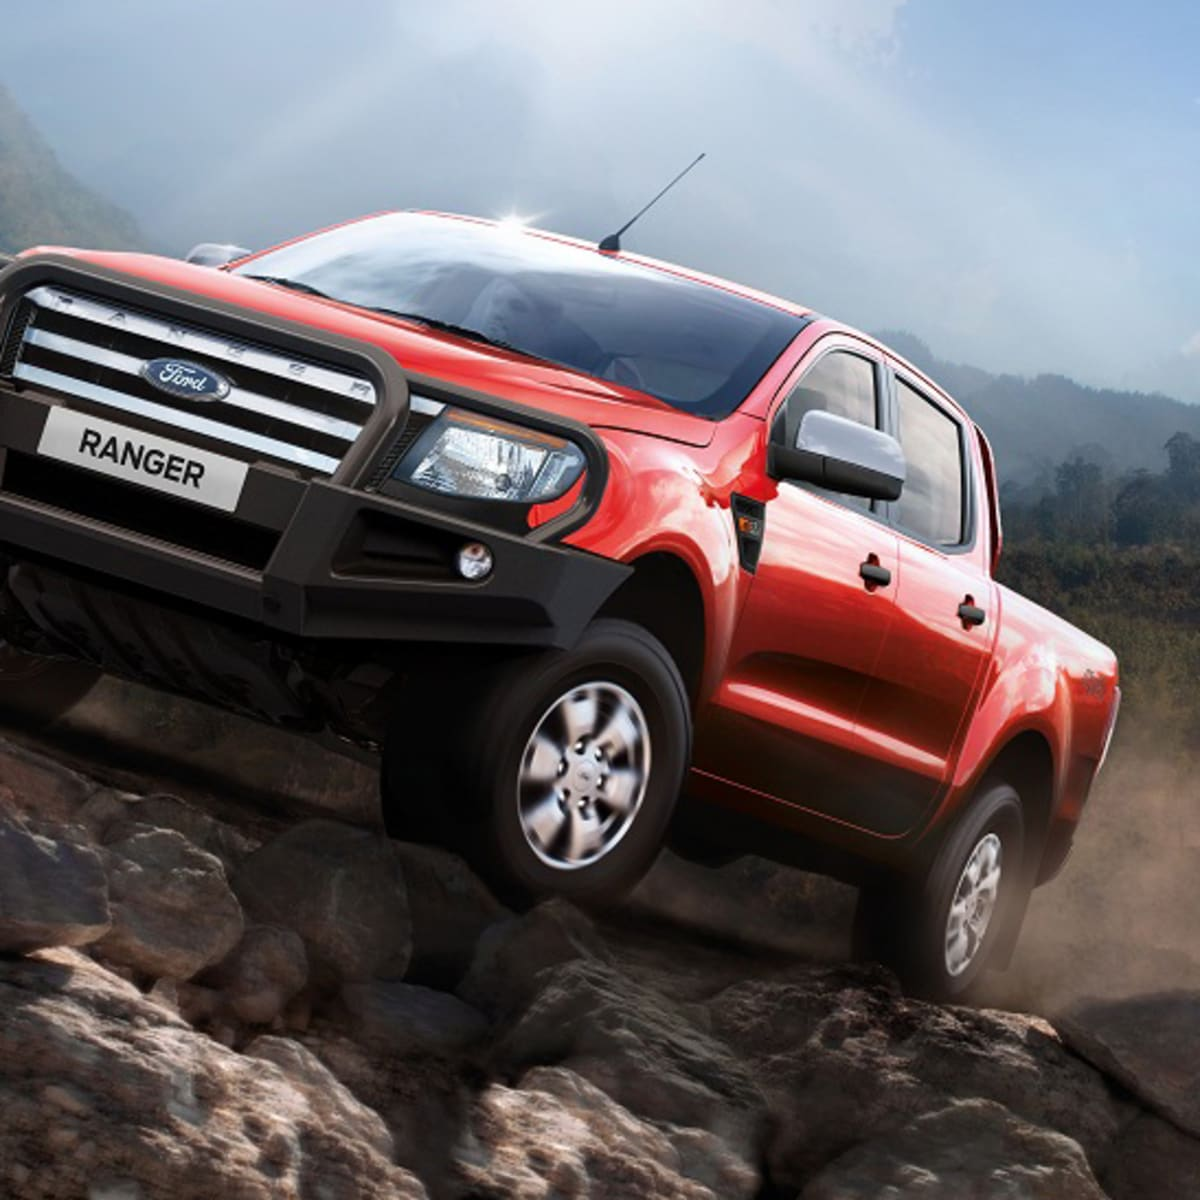 Ford Ranger, Territory recalled for sensor fix: Rear wheels could